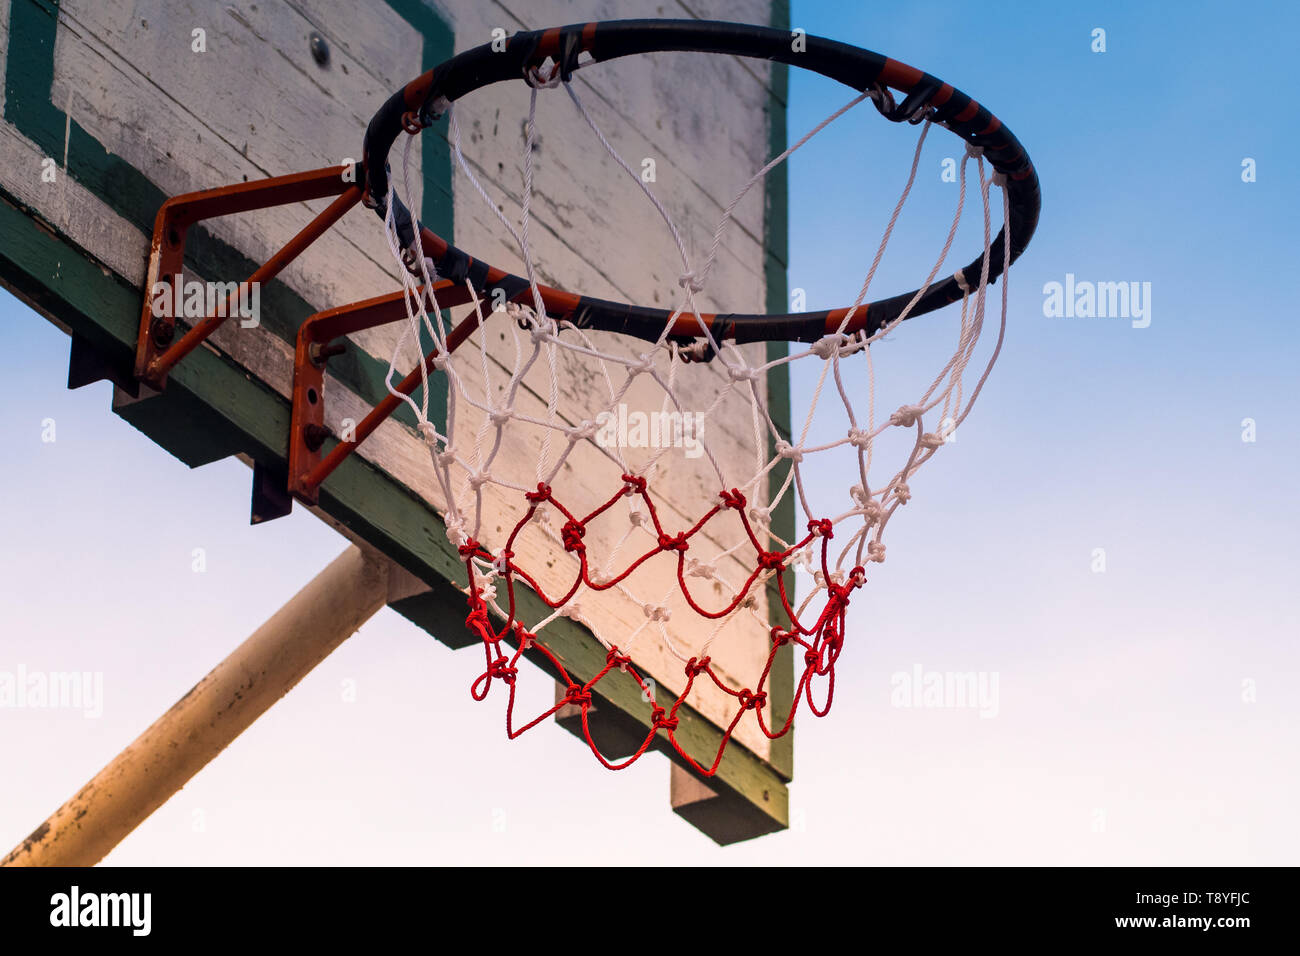 Outdoor basketball court at sunrise nature sky background healthy hobby concept idea background - Stock Image